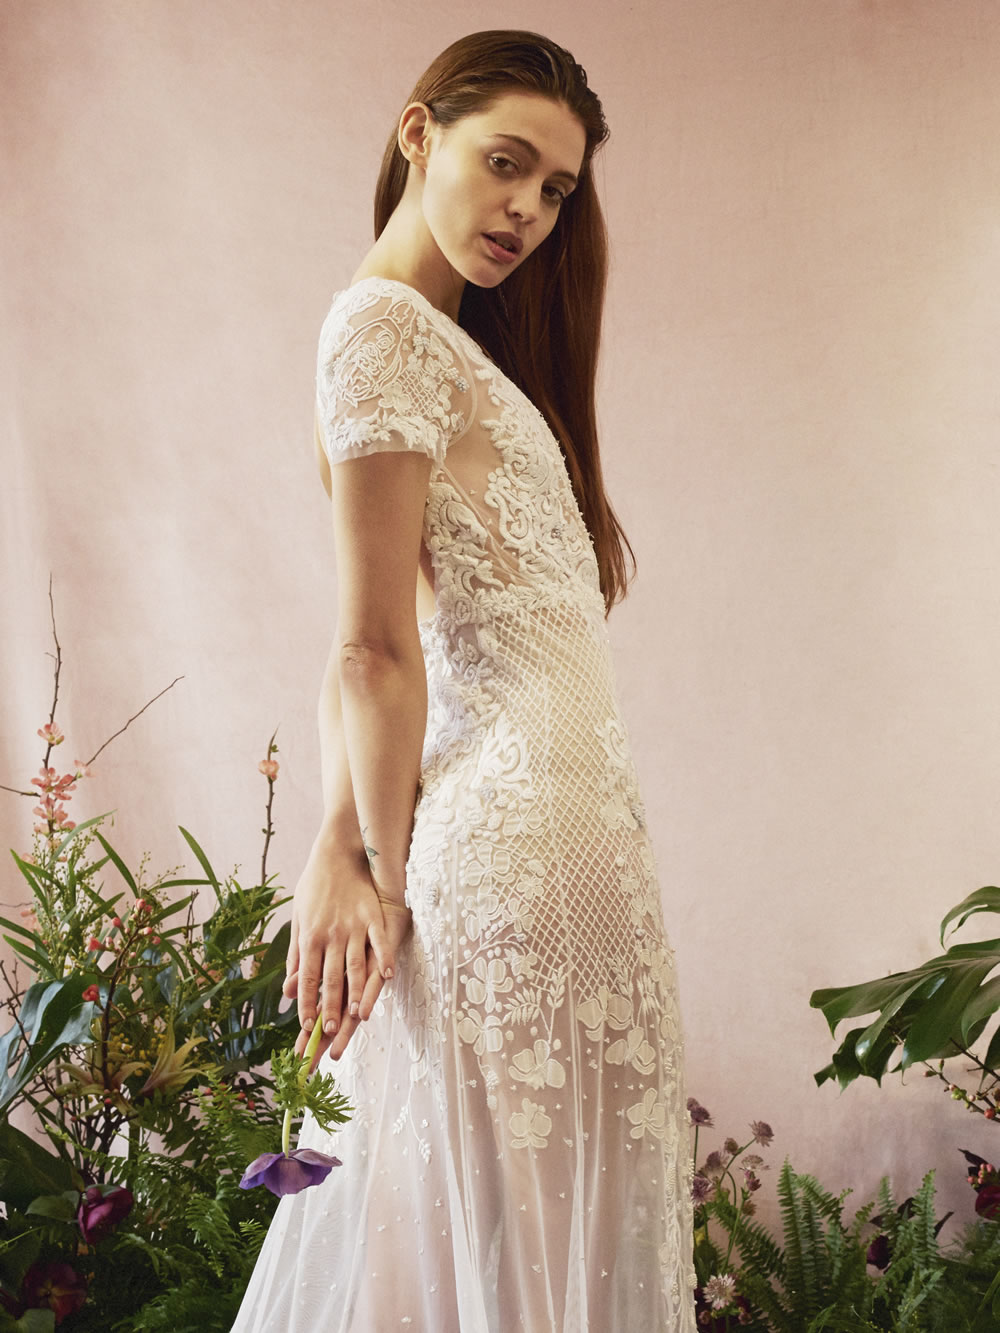 Botanical Heirloom Art Bridal Couture Ready To Wear By Hermione De Paula